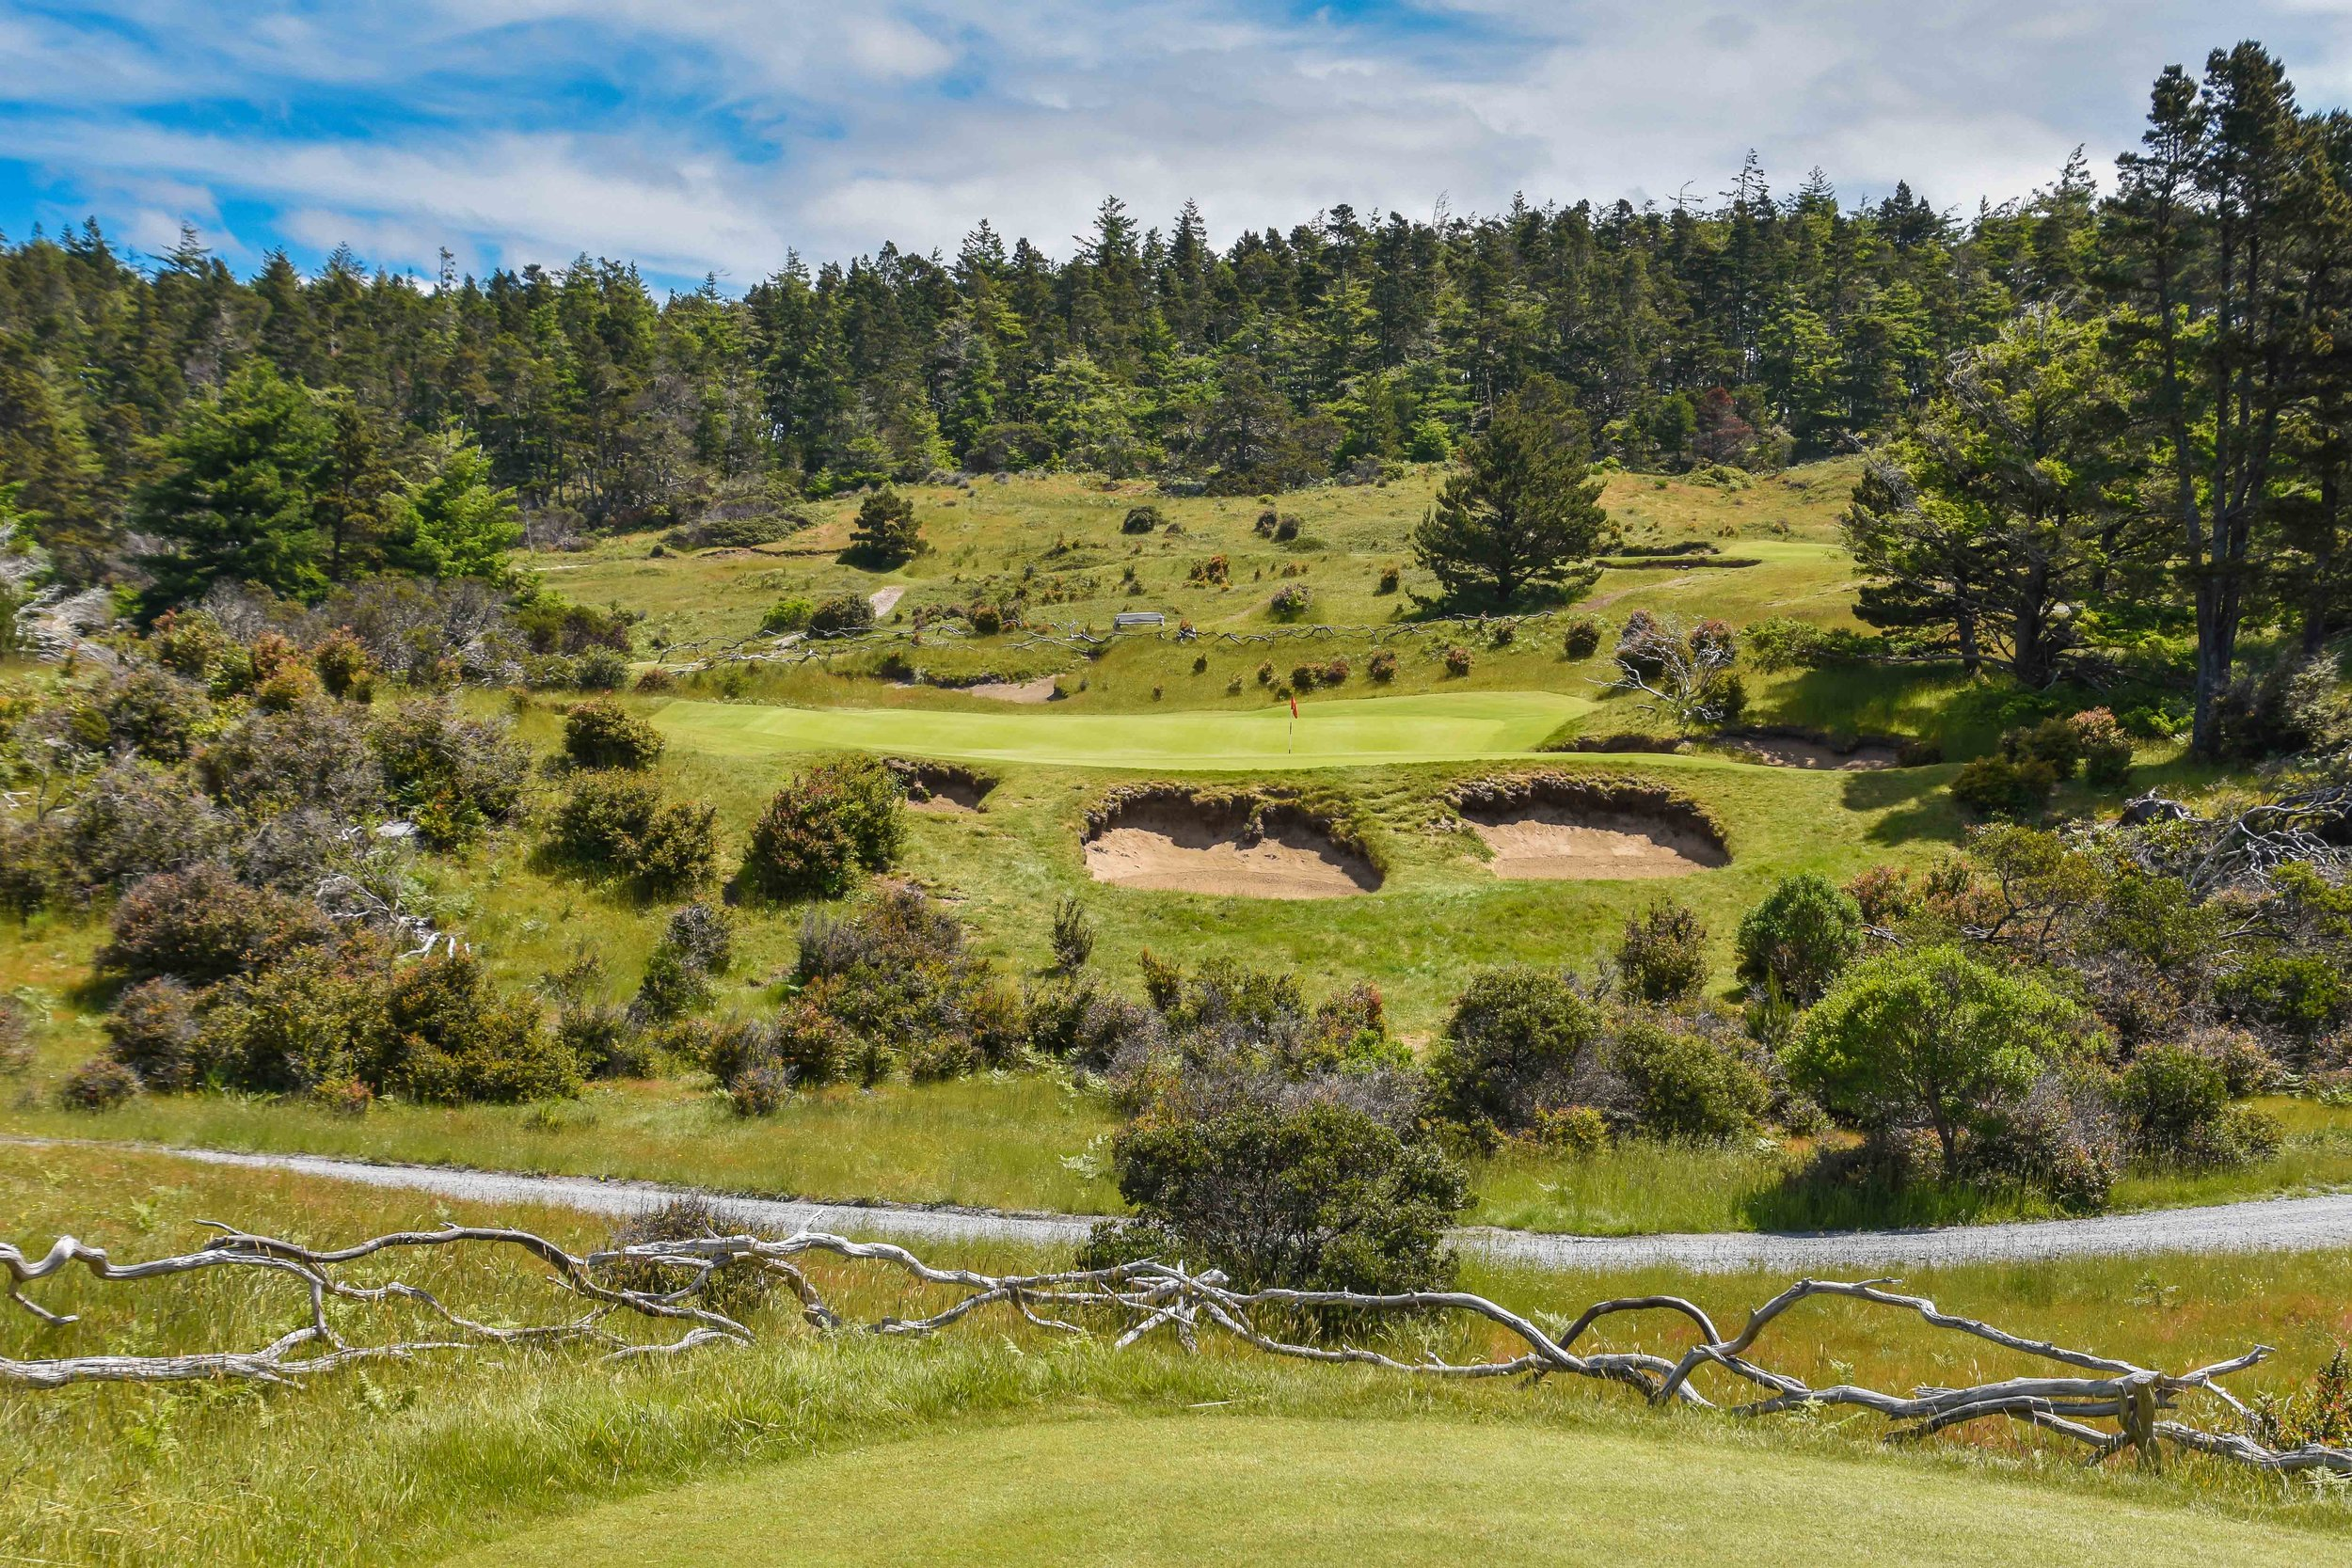 The popular 5th hole at  Bandon Trails.